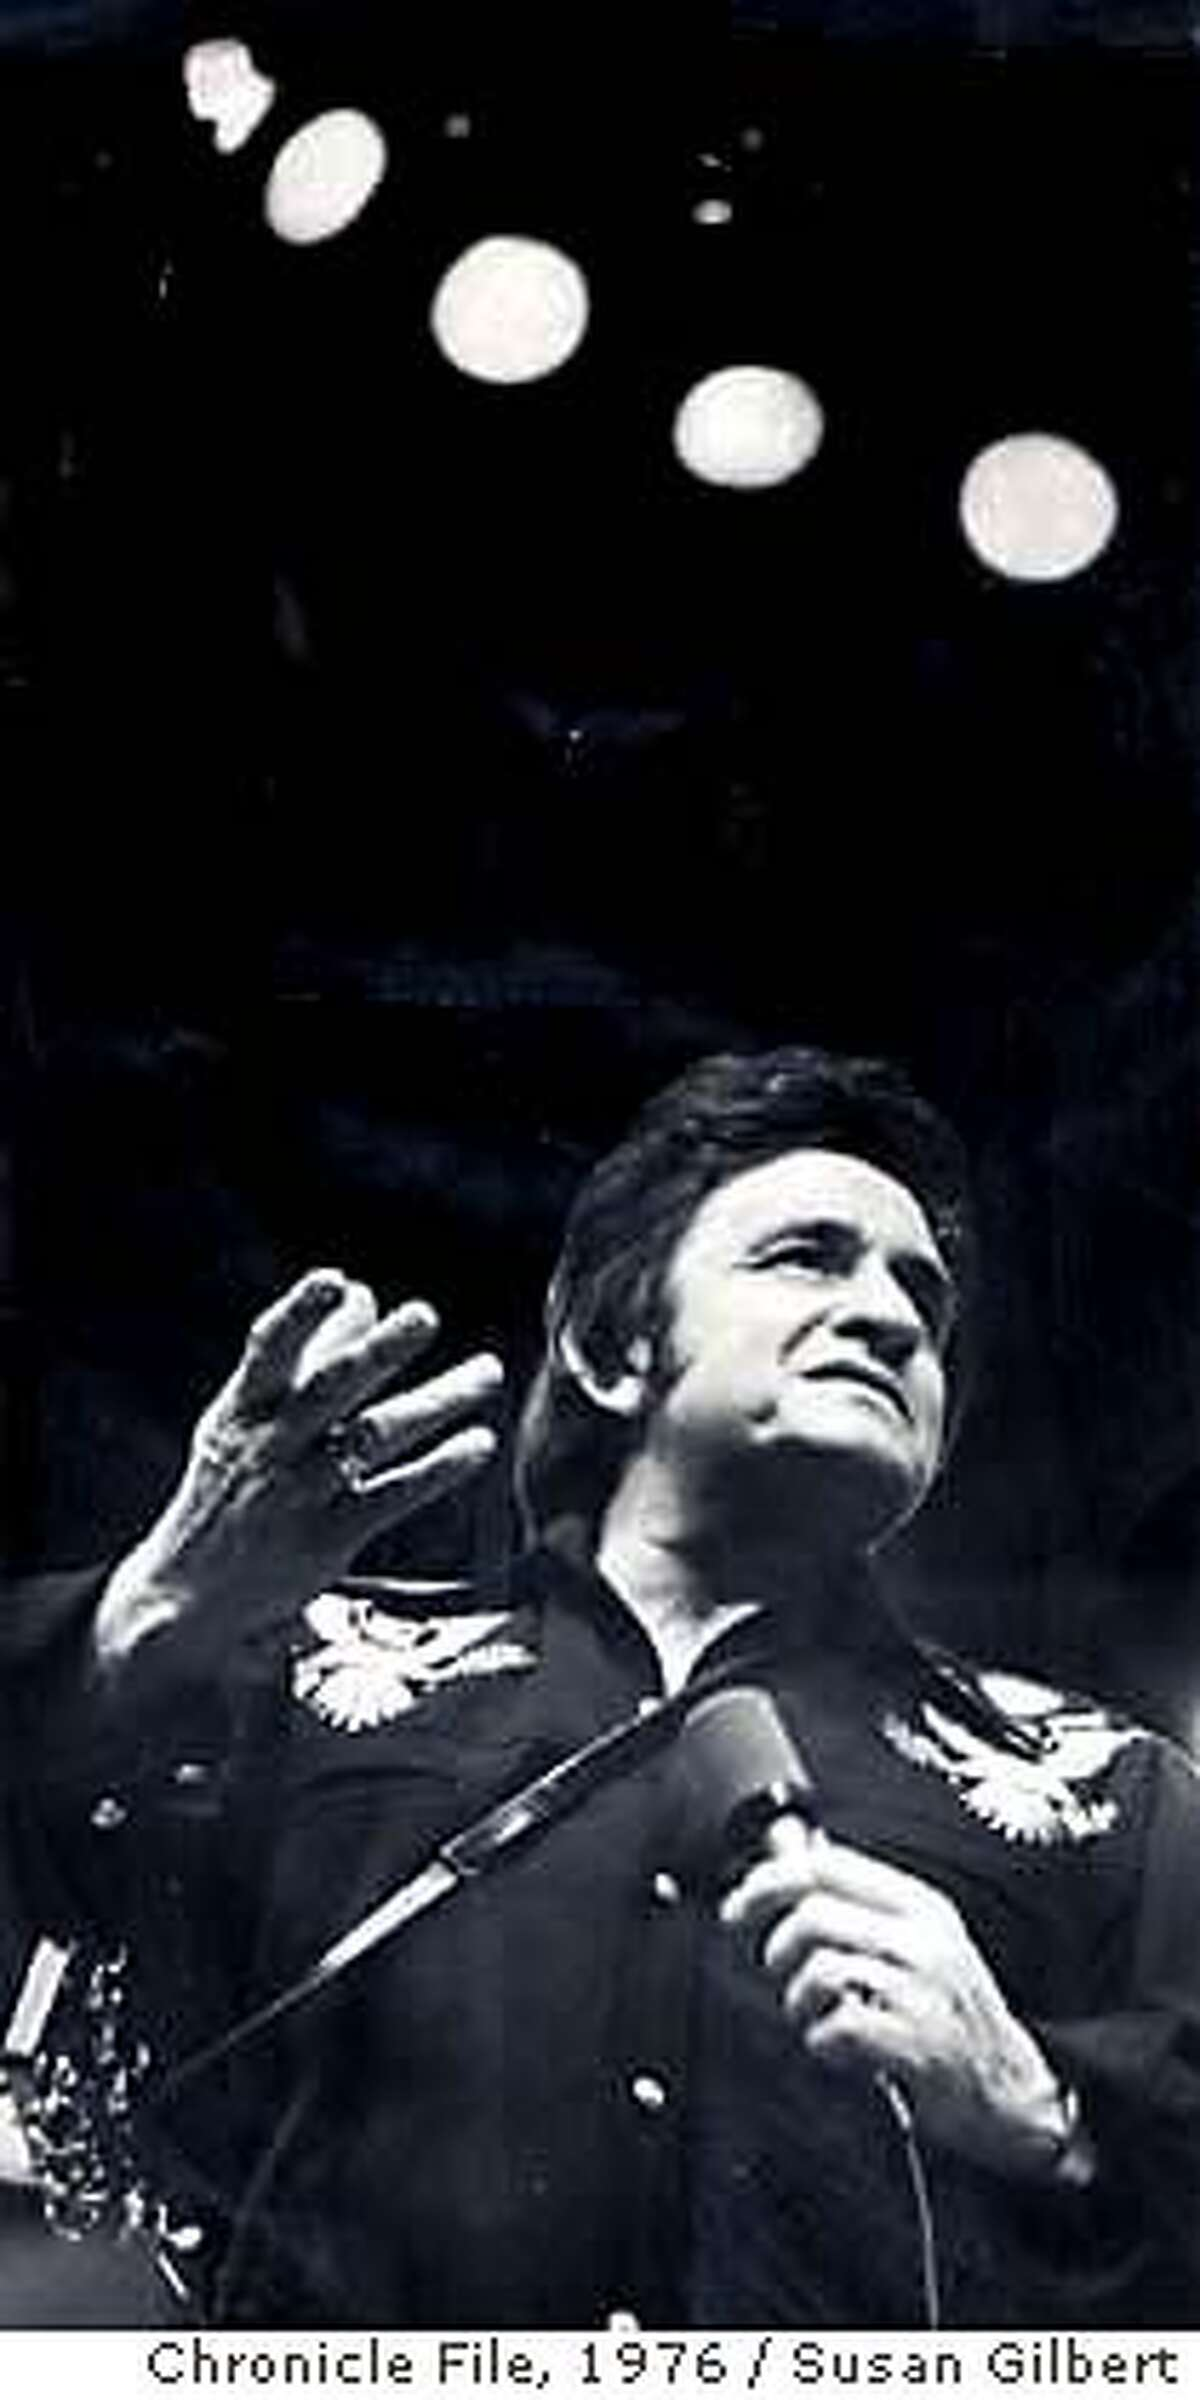 Johnny Cash in concert(3/12/76) on 9/12/03 in San Francisco. Susan Gilbert / The Chronicle / 1976